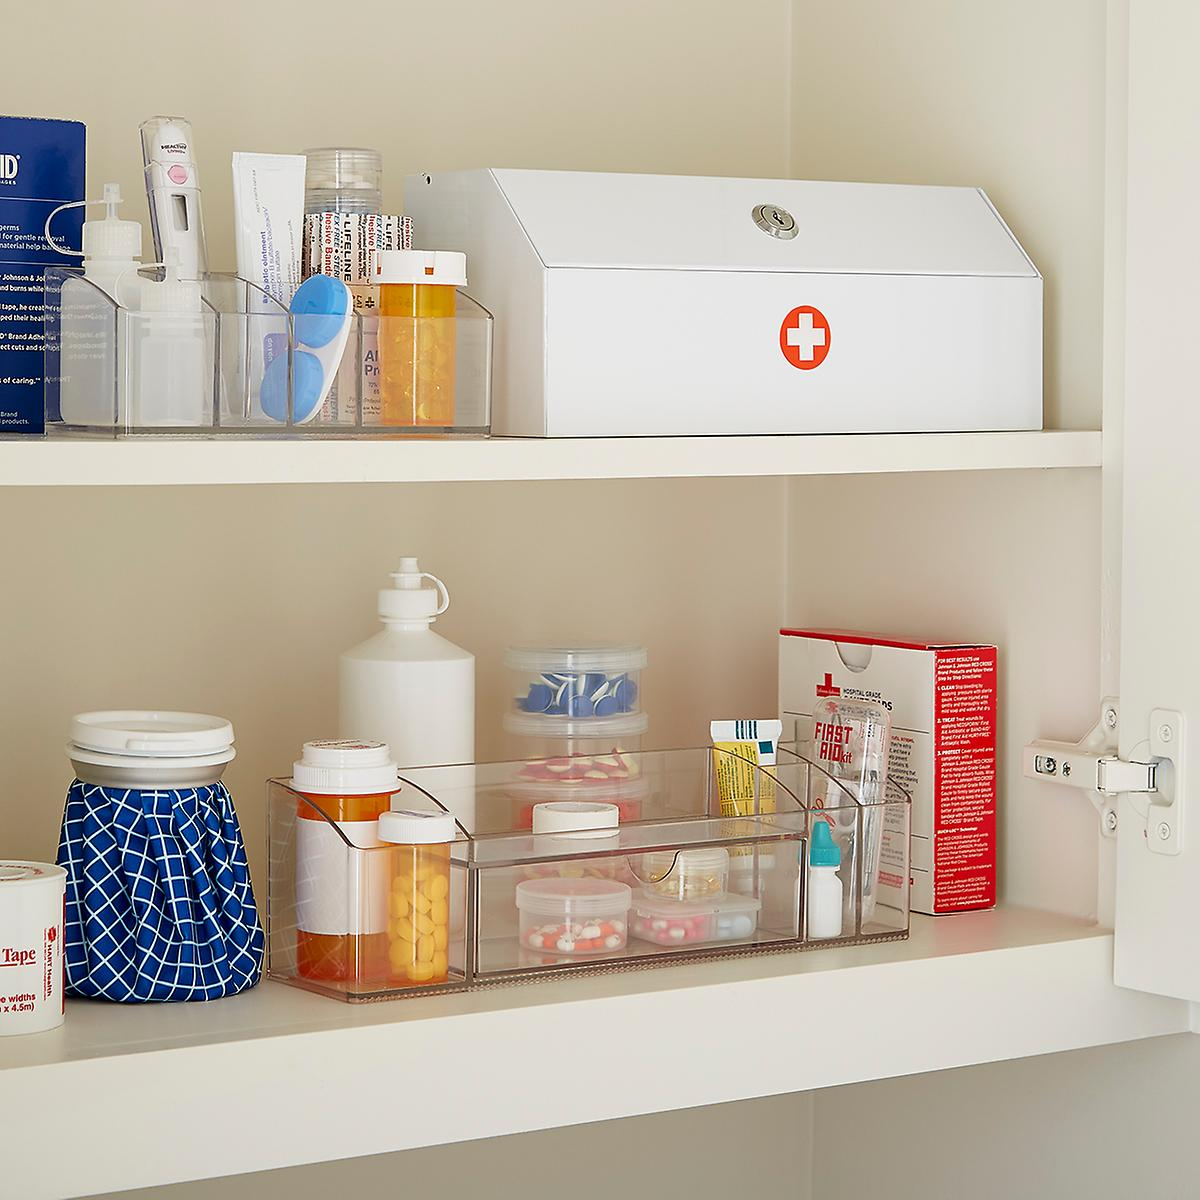 InterDesign Linus Cabinet Organizer with Drawer | The Container Store